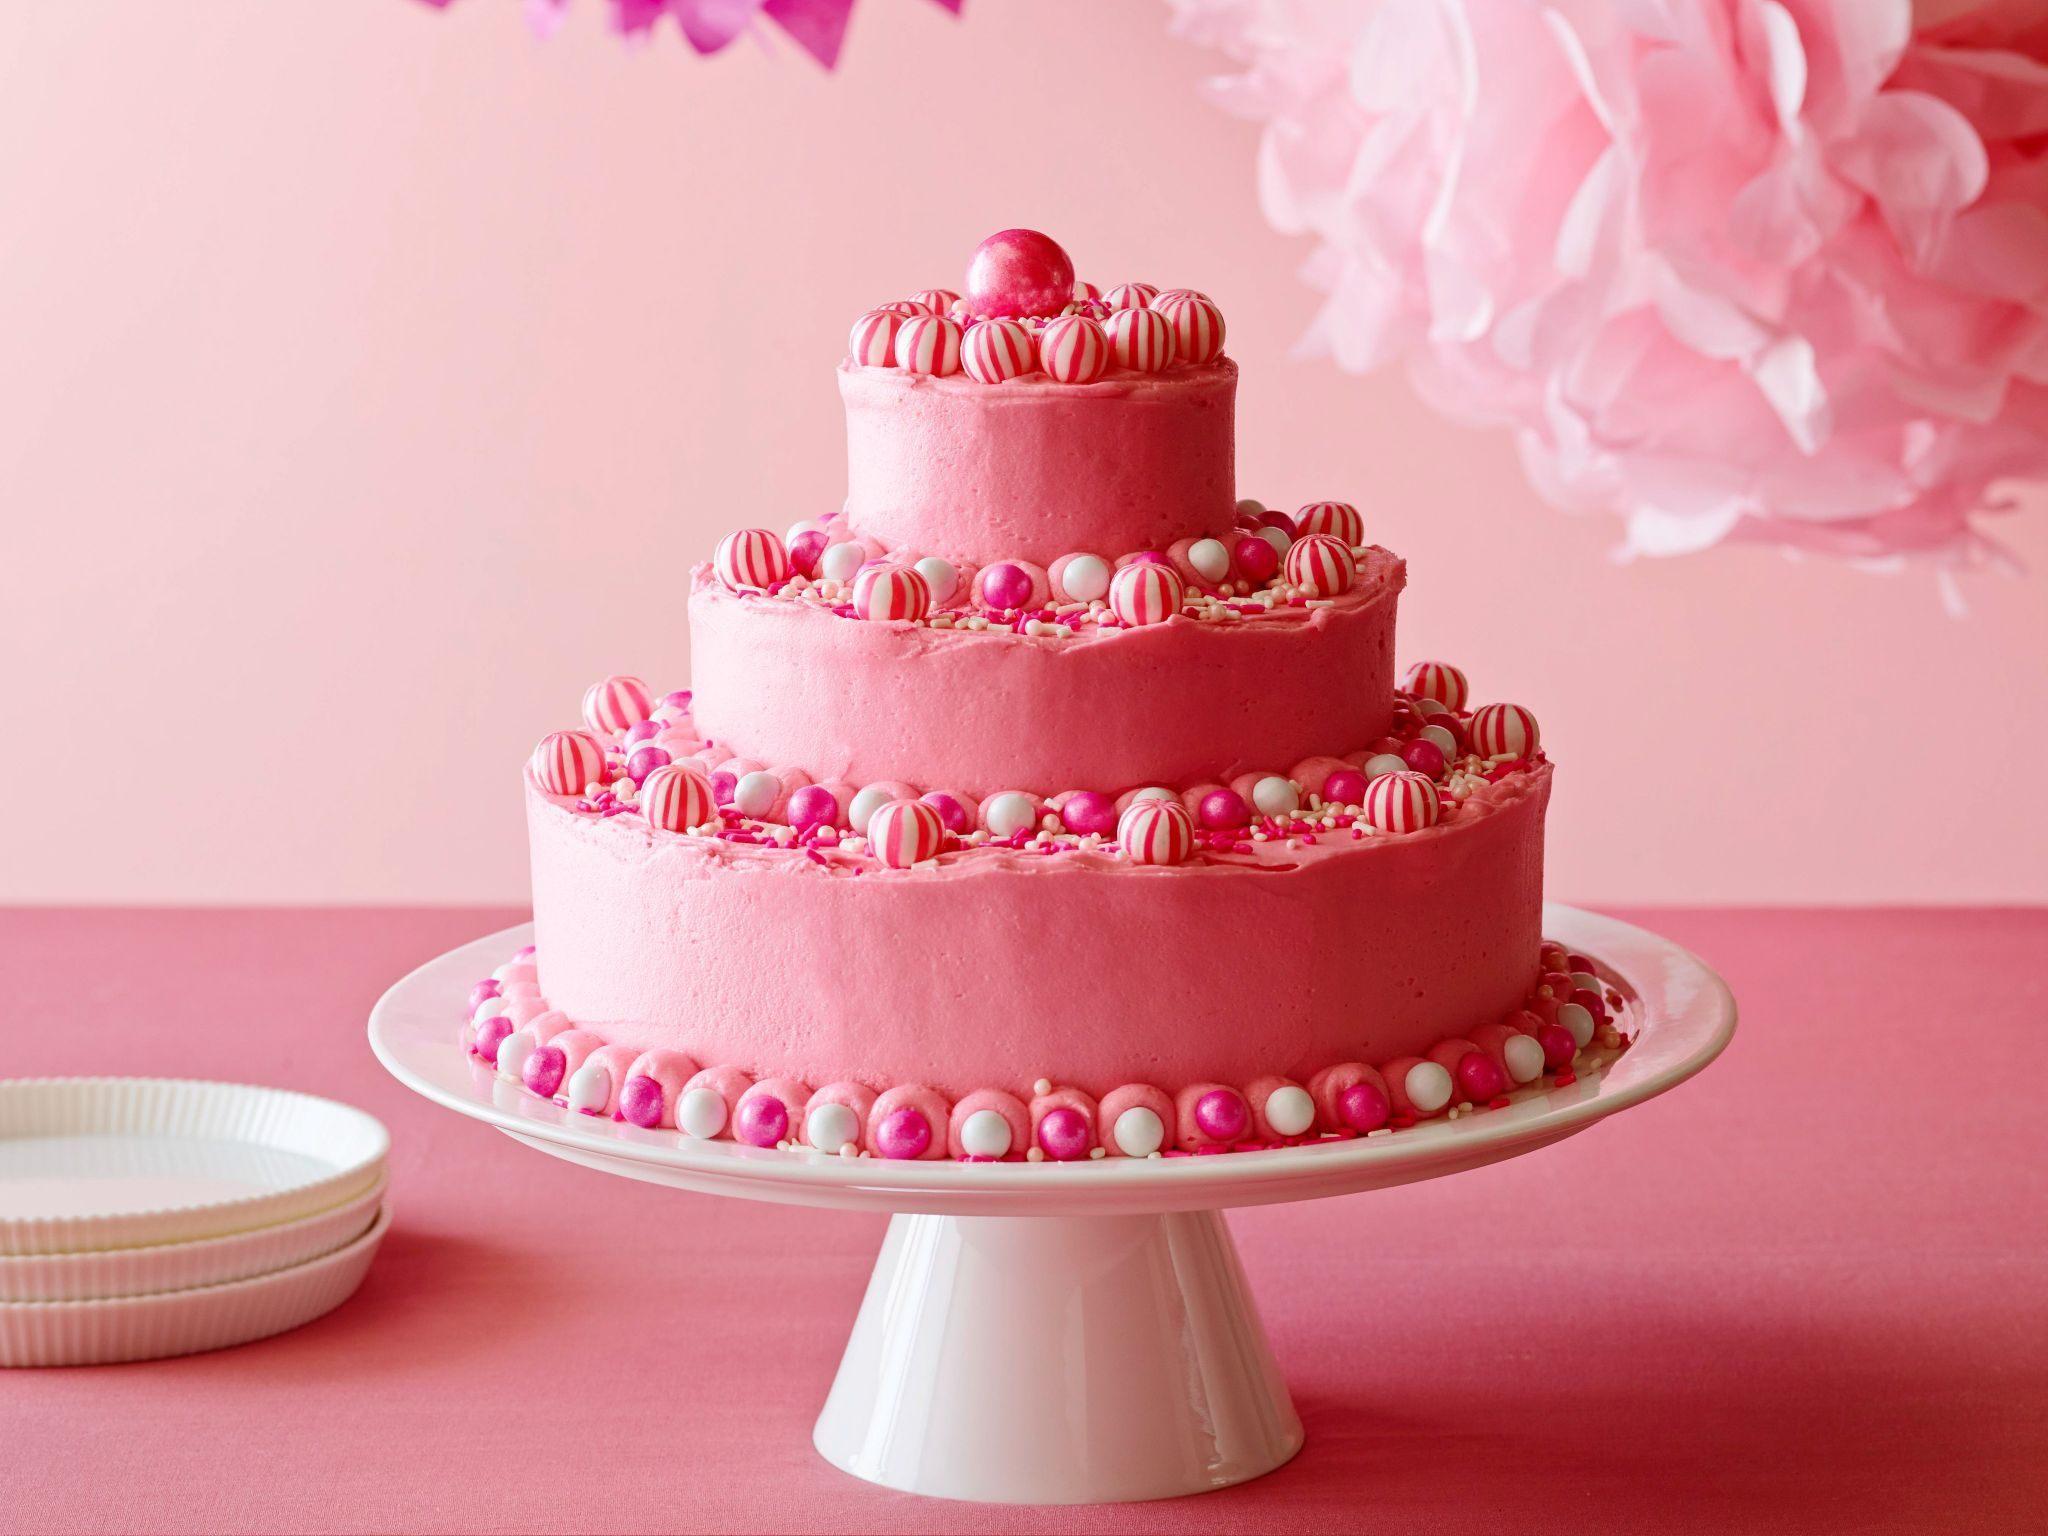 Best Frosting and Icing Recipes | Icing recipe, Ina garten and Garten